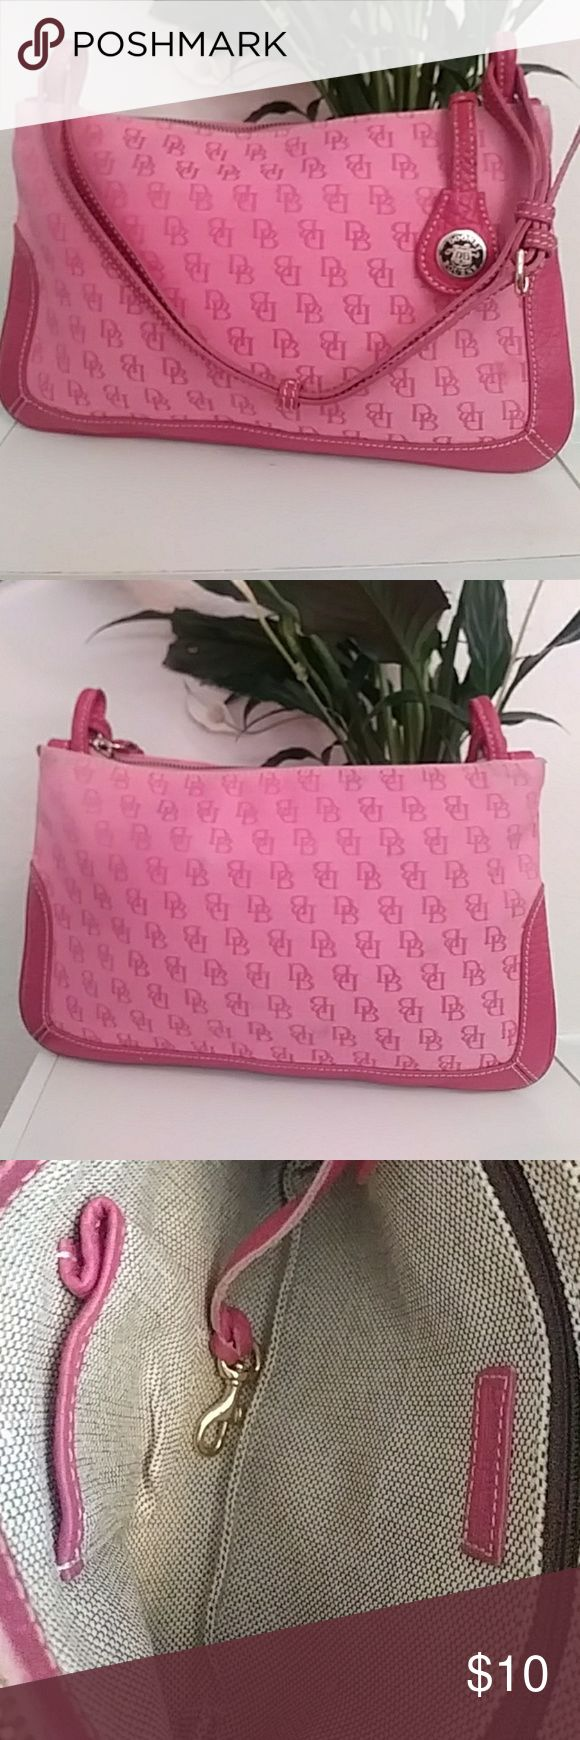 Final Price Drop! Pink Dooney and Bourke wristlet *Fading a little  * Has a few little marks on the front, but can.  probably come out in the wash easy.  ( I posted a pic of them )  If you have any questions let me know. :) Dooney & Bourke Bags Clutches & Wristlets